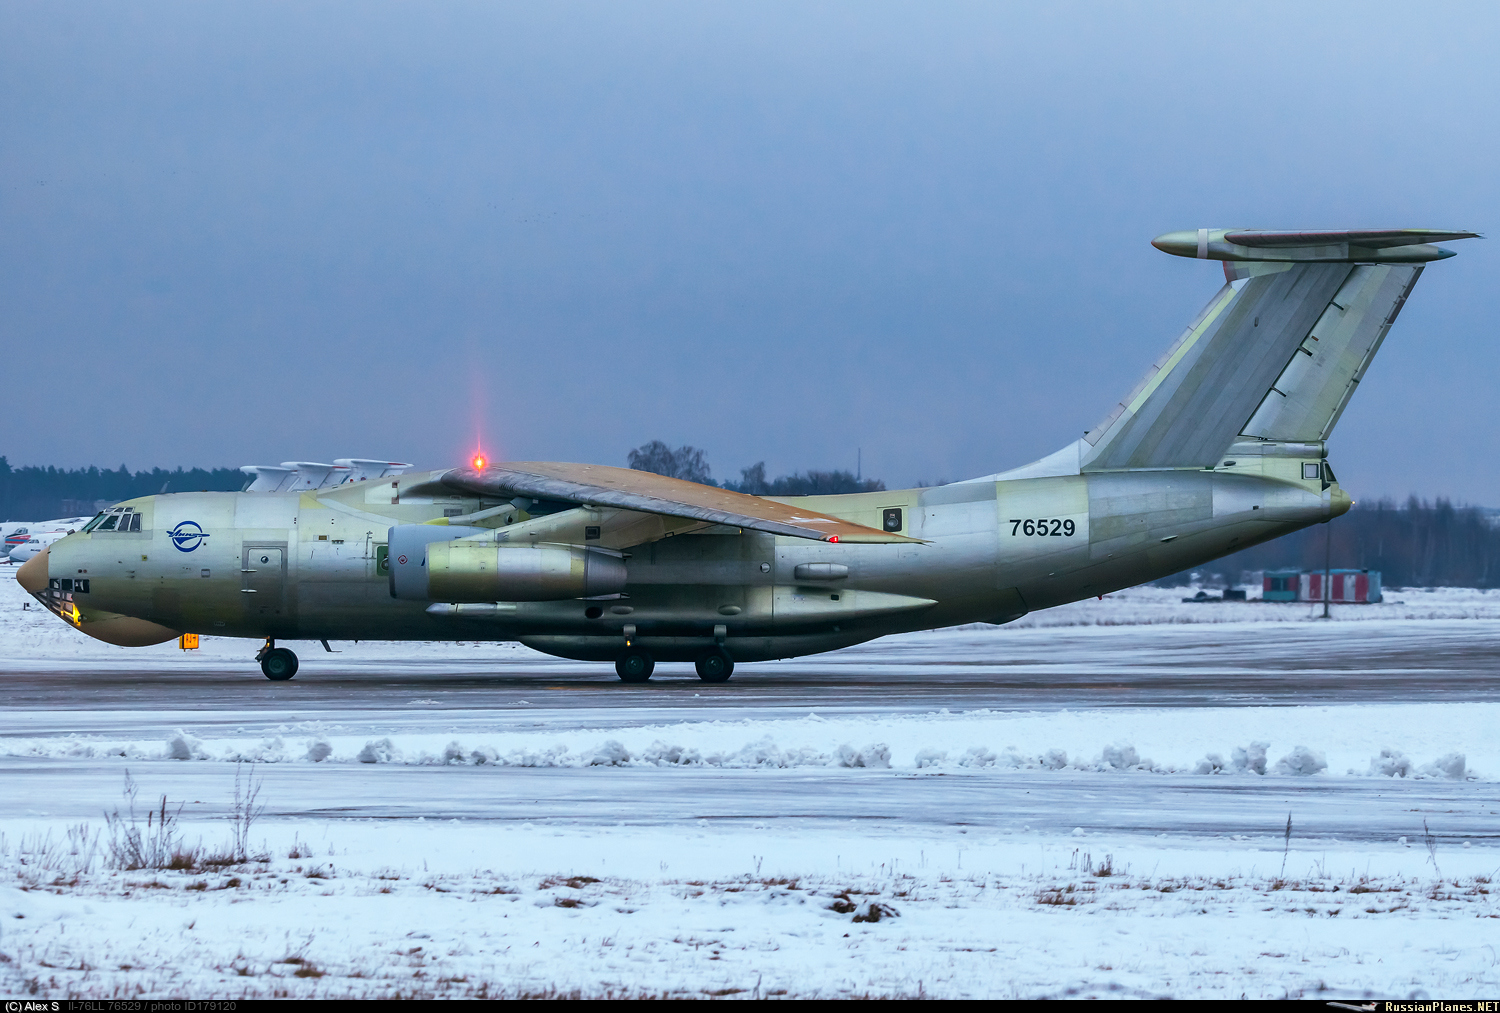 http://russianplanes.net/images/to180000/179120.jpg